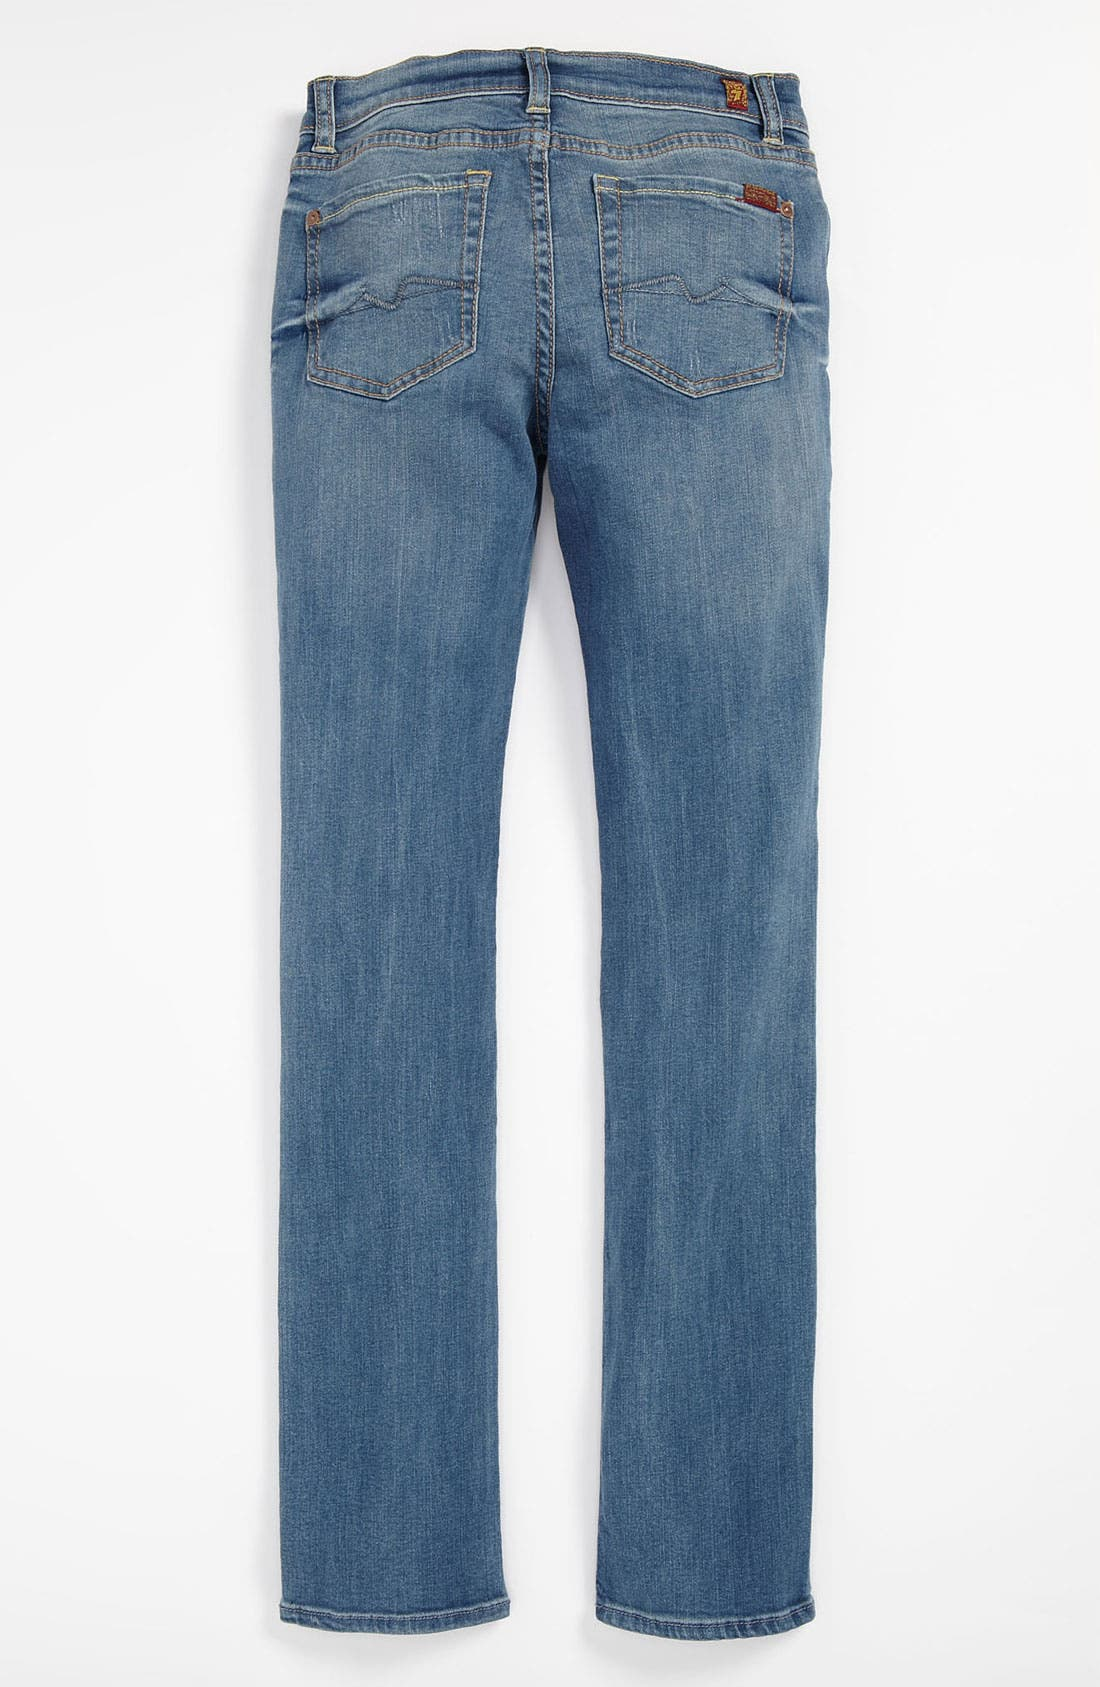 Main Image - 7 For All Mankind® Distressed Straight Leg Jeans (Big Girls)